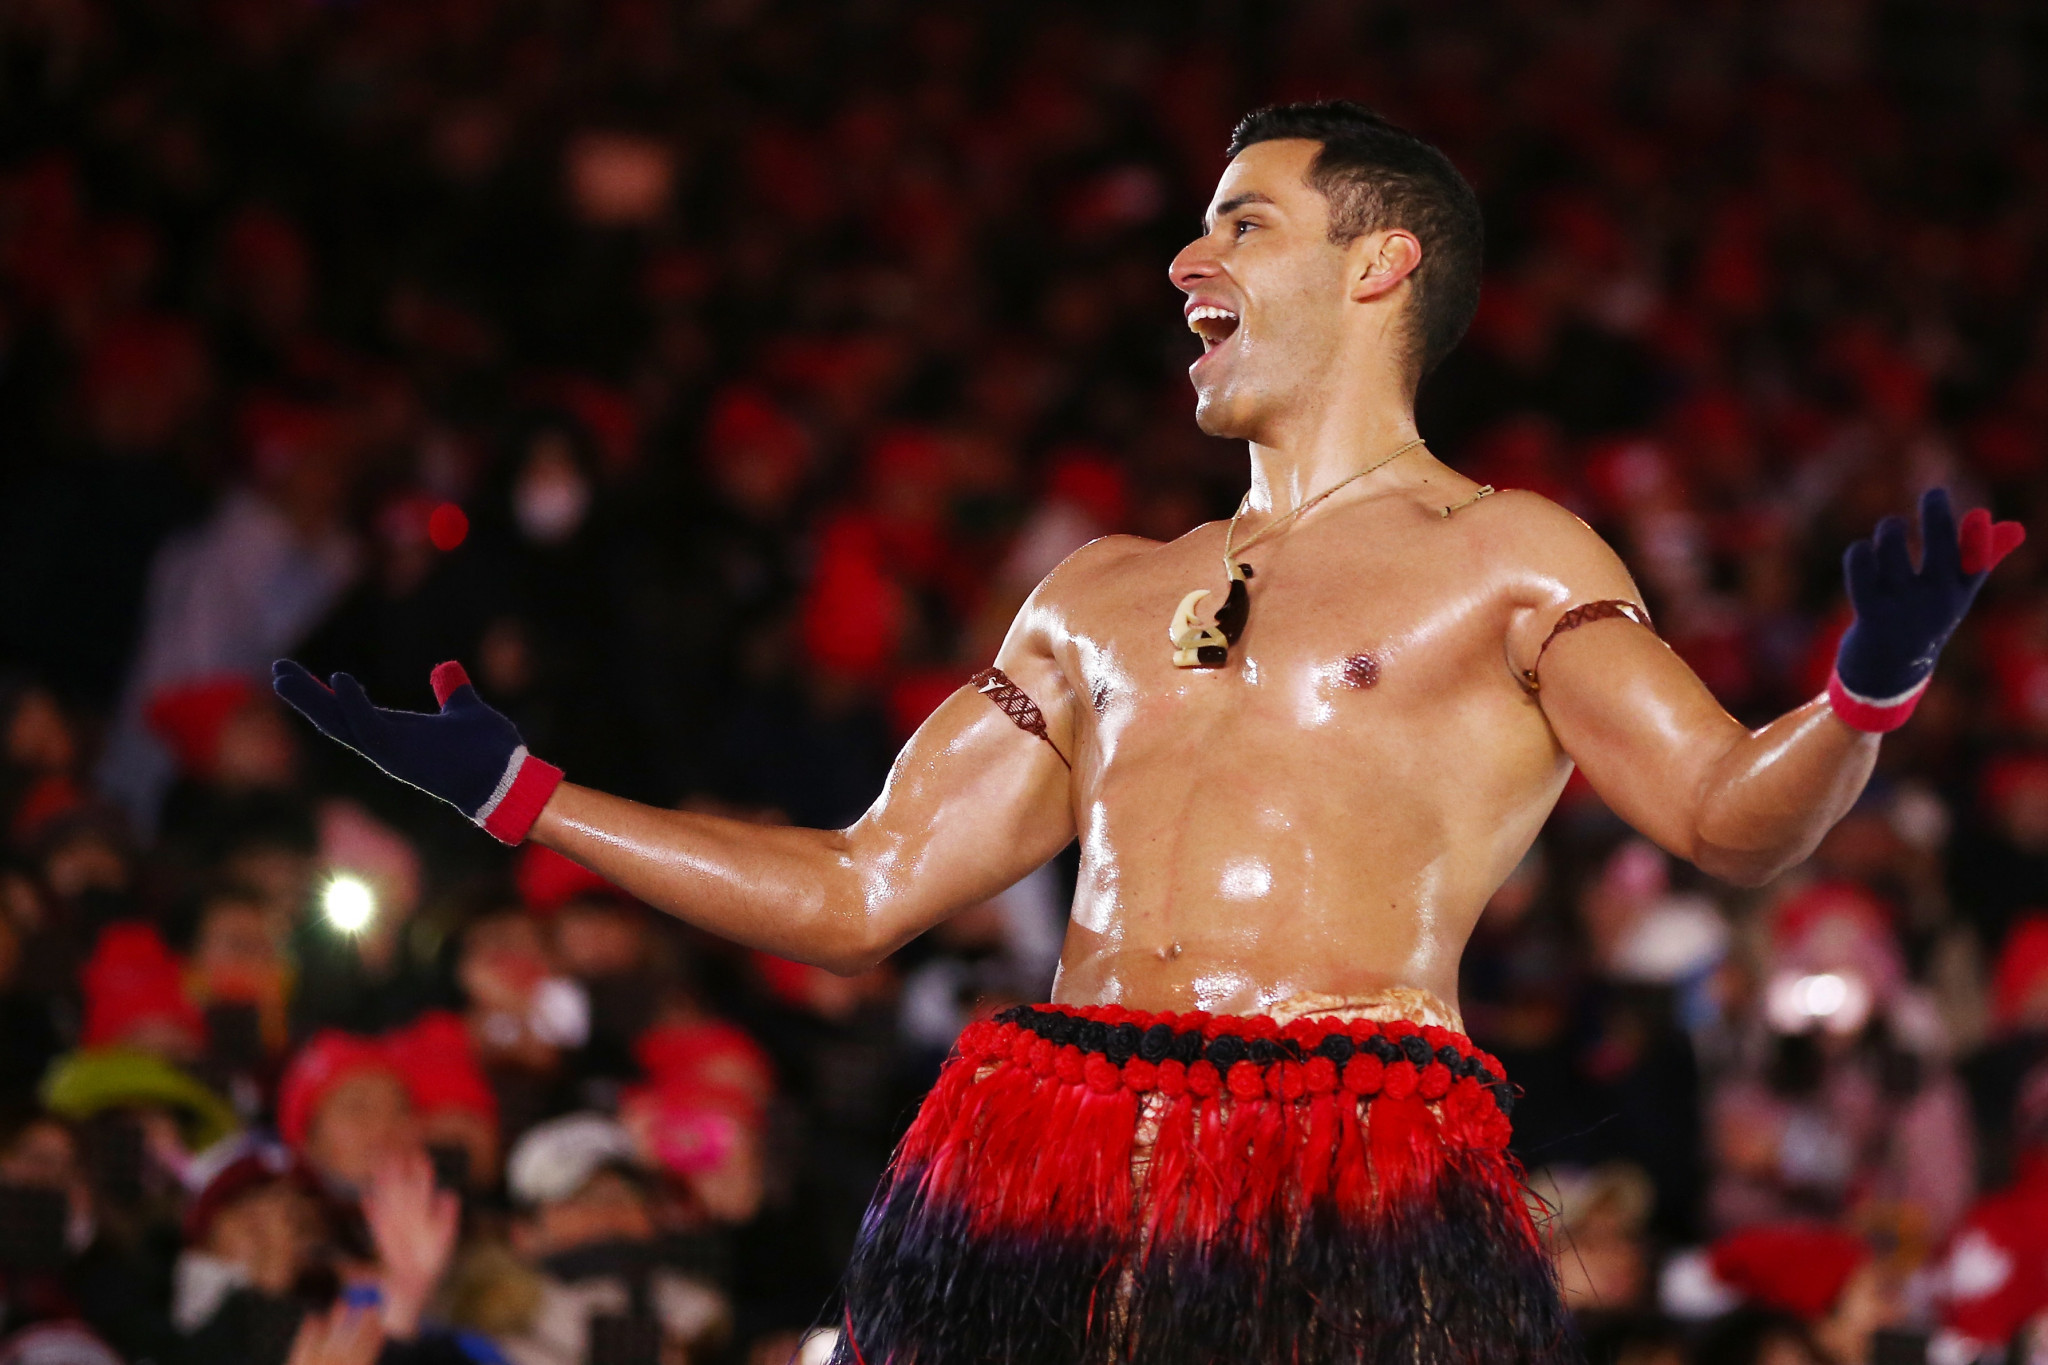 Pita Taufatofua was Tonga's flag bearer at the Rio 2016 Olympic Games ©Getty Images